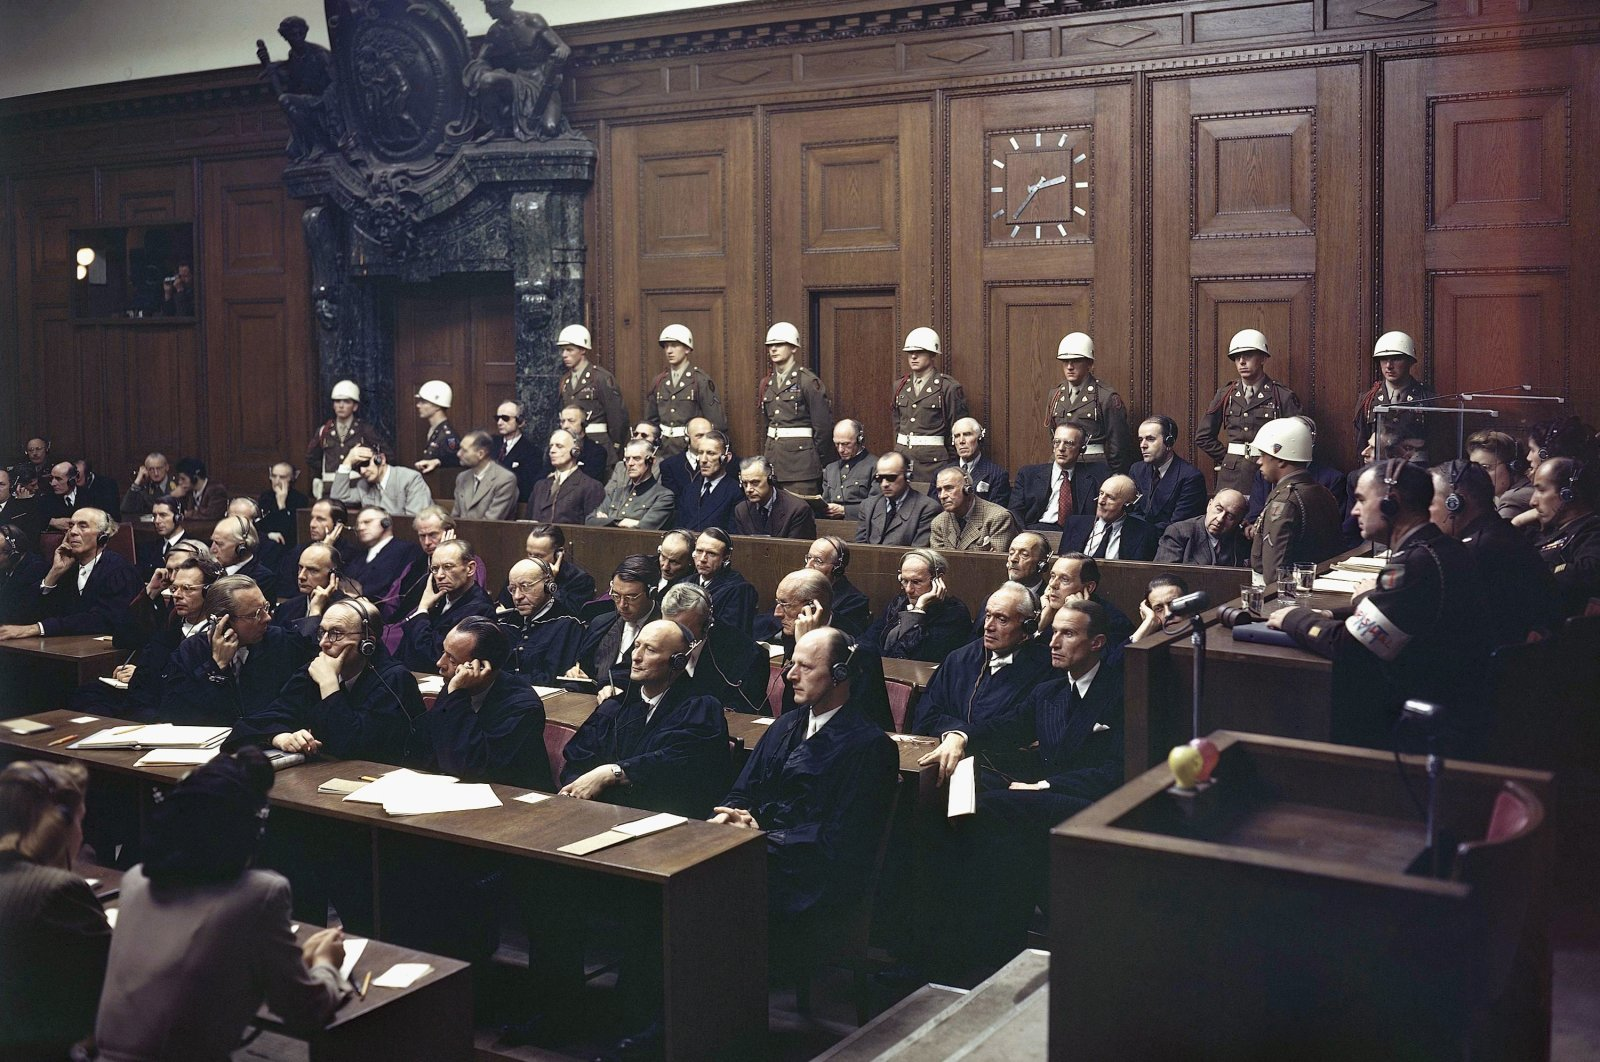 In this file photo, defendants listen to part of the verdict in the Palace of Justice during the Nuremberg War Crimes Trial in Nuremberg, Germany on Sept. 30, 1946. (AP Photo)